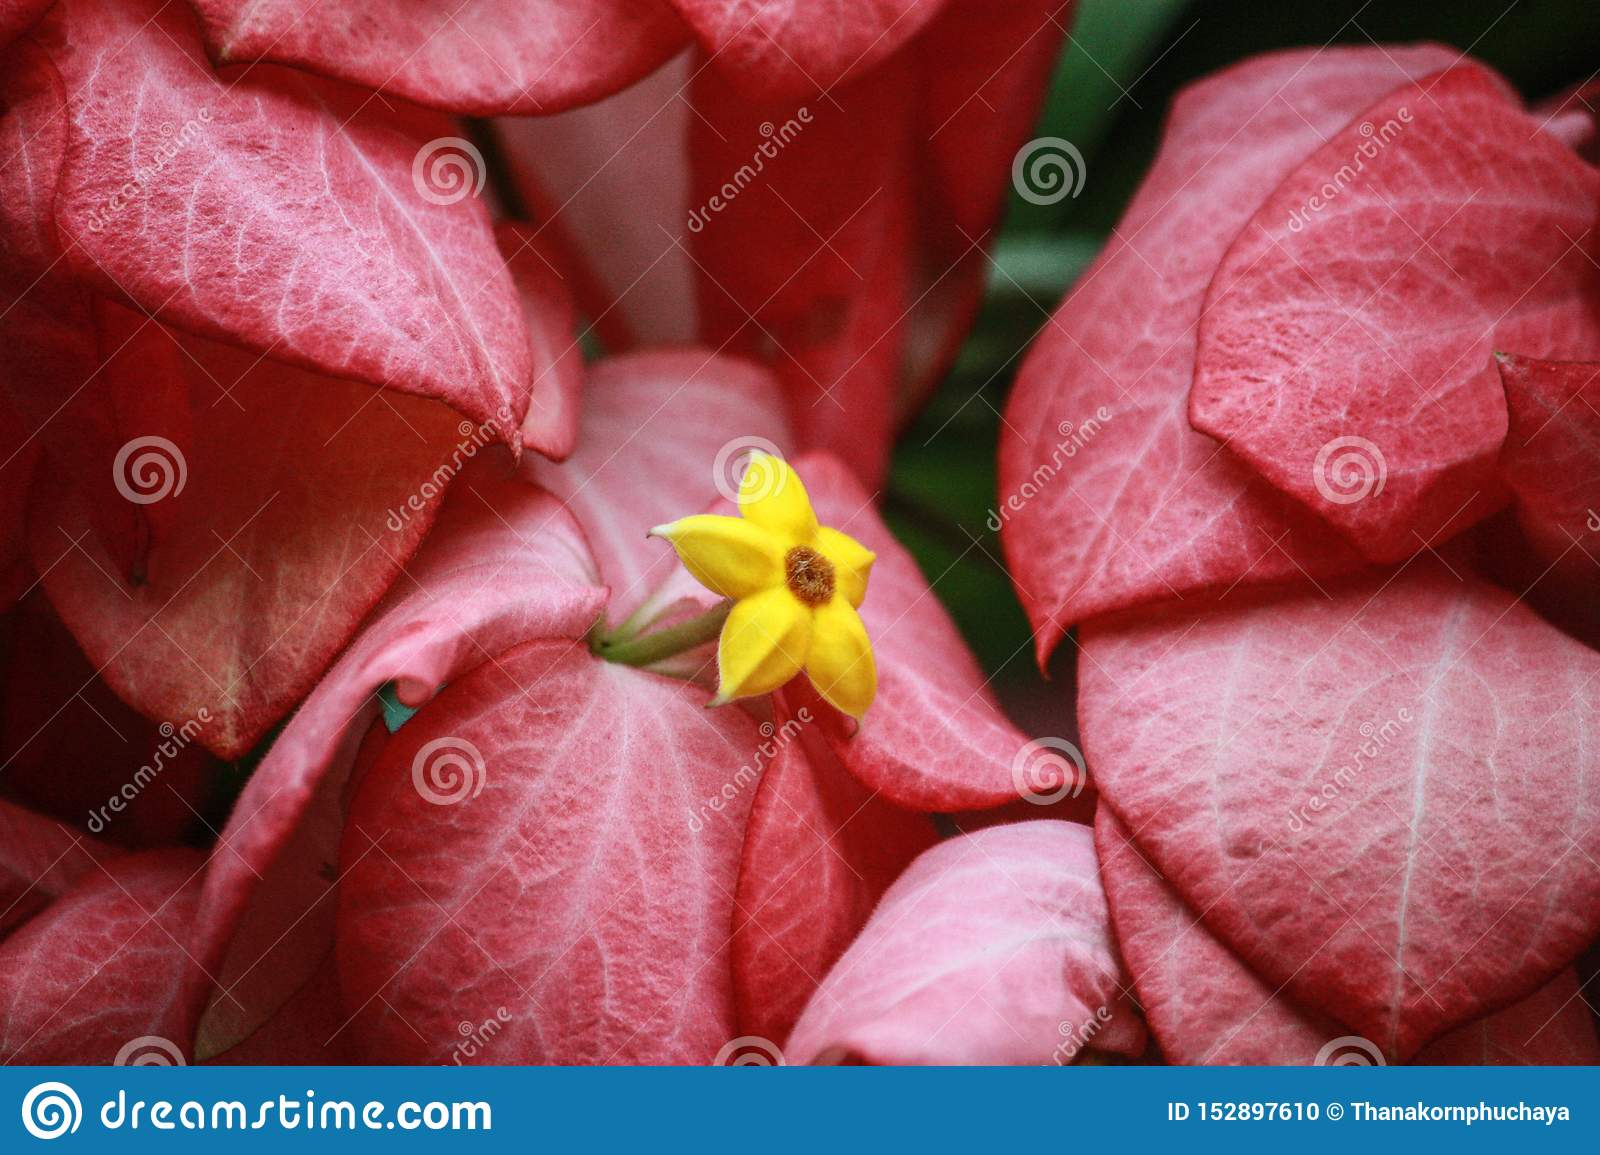 Pink flowers are cut with yellow stamens.